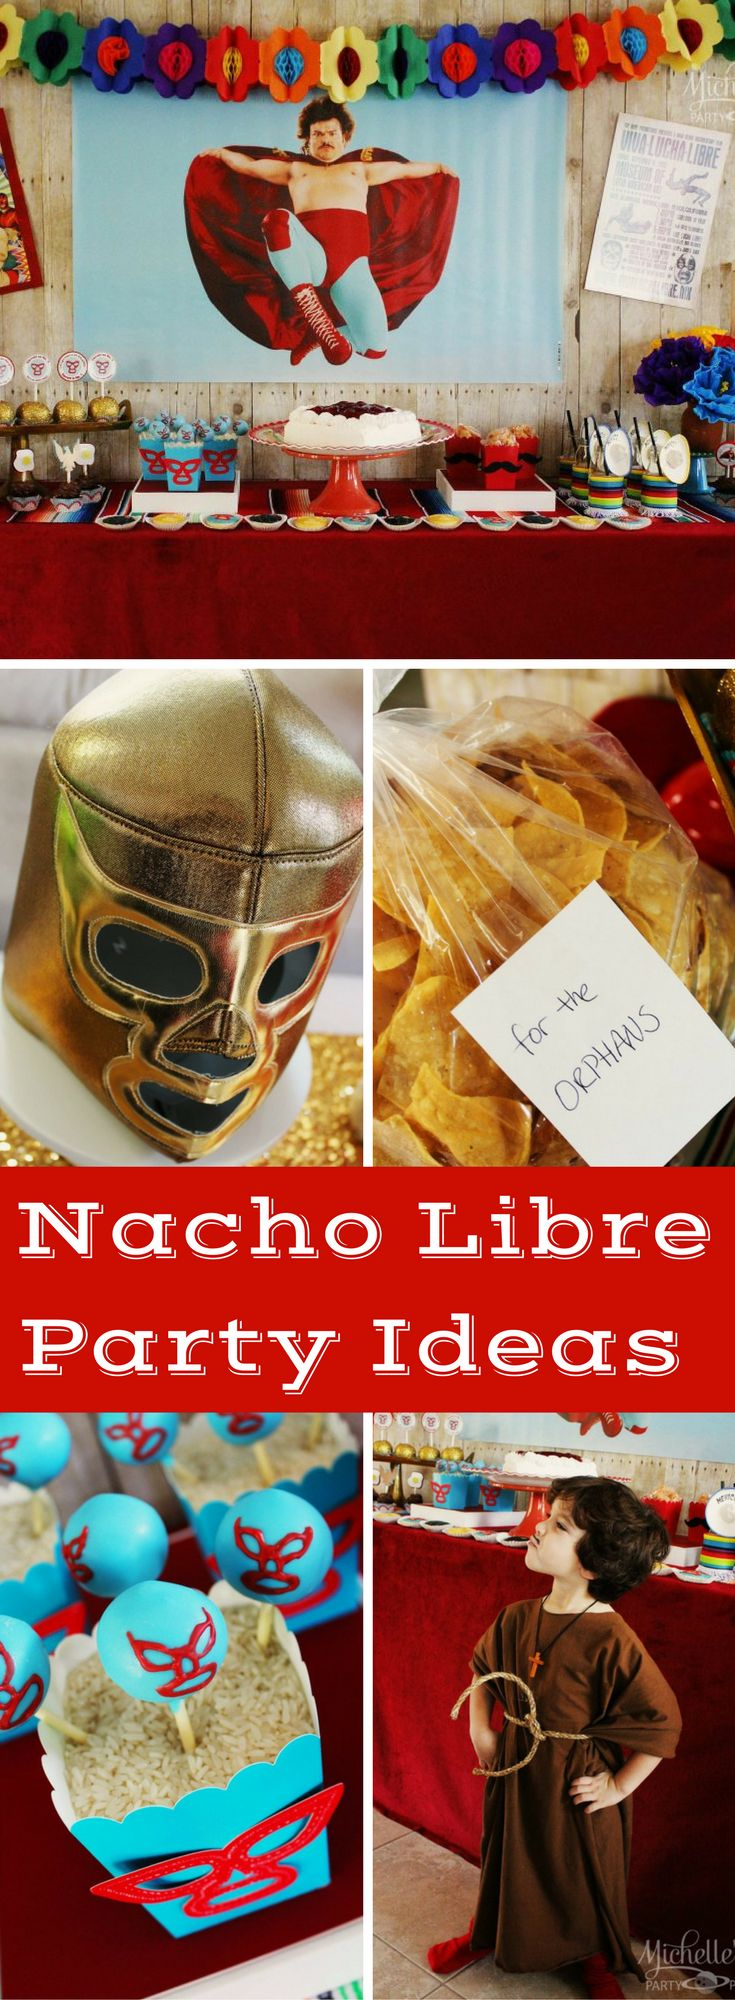 Nacho Libre Party Ideas - A Nacho Libre Party for a father's day celebration. A colorful mexican themed fiesta with ideas for any mexican holiday or themed birthday party.